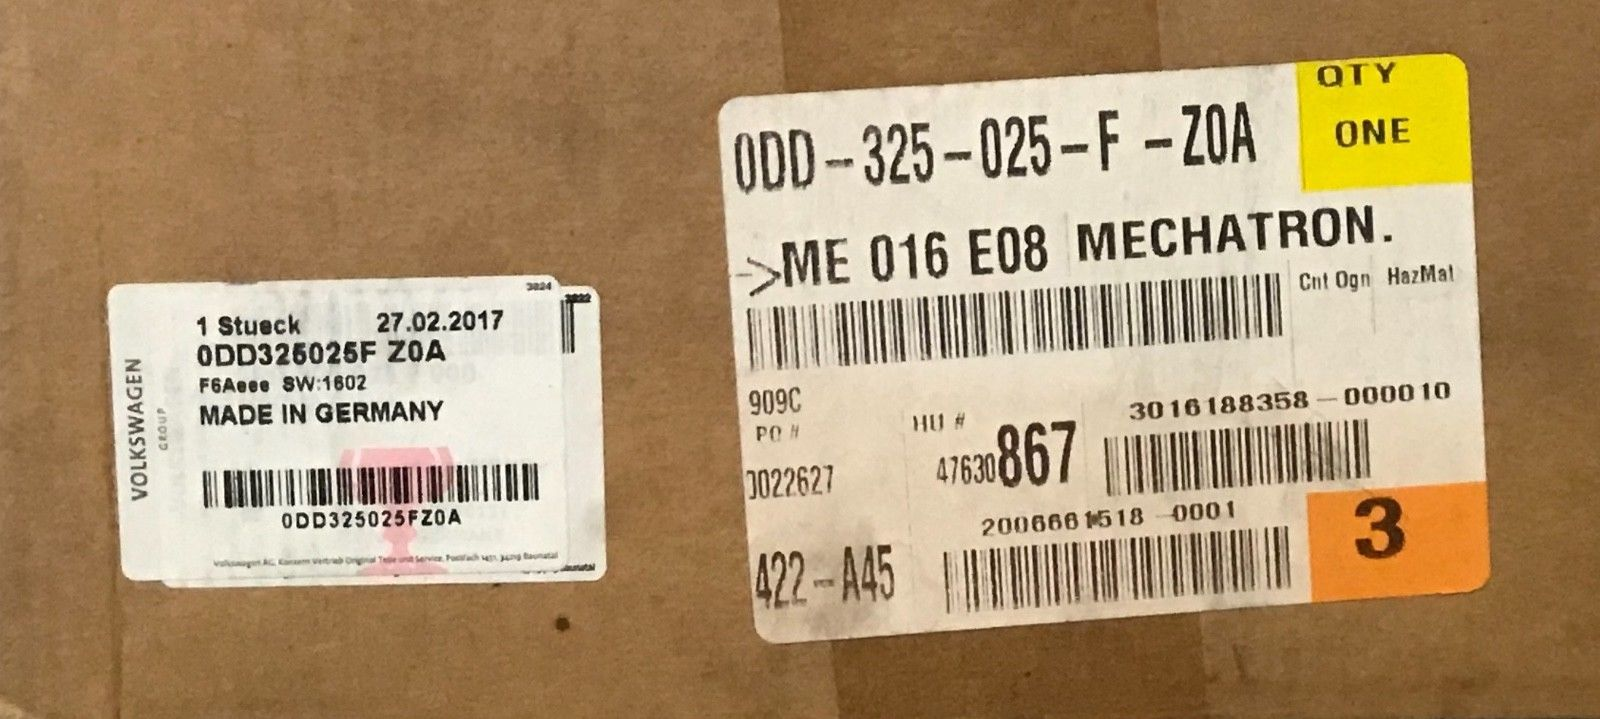 Genuine VW/Audi Mechatron Component #0DD325025FZ0A (New)(Warranty) Does not apply